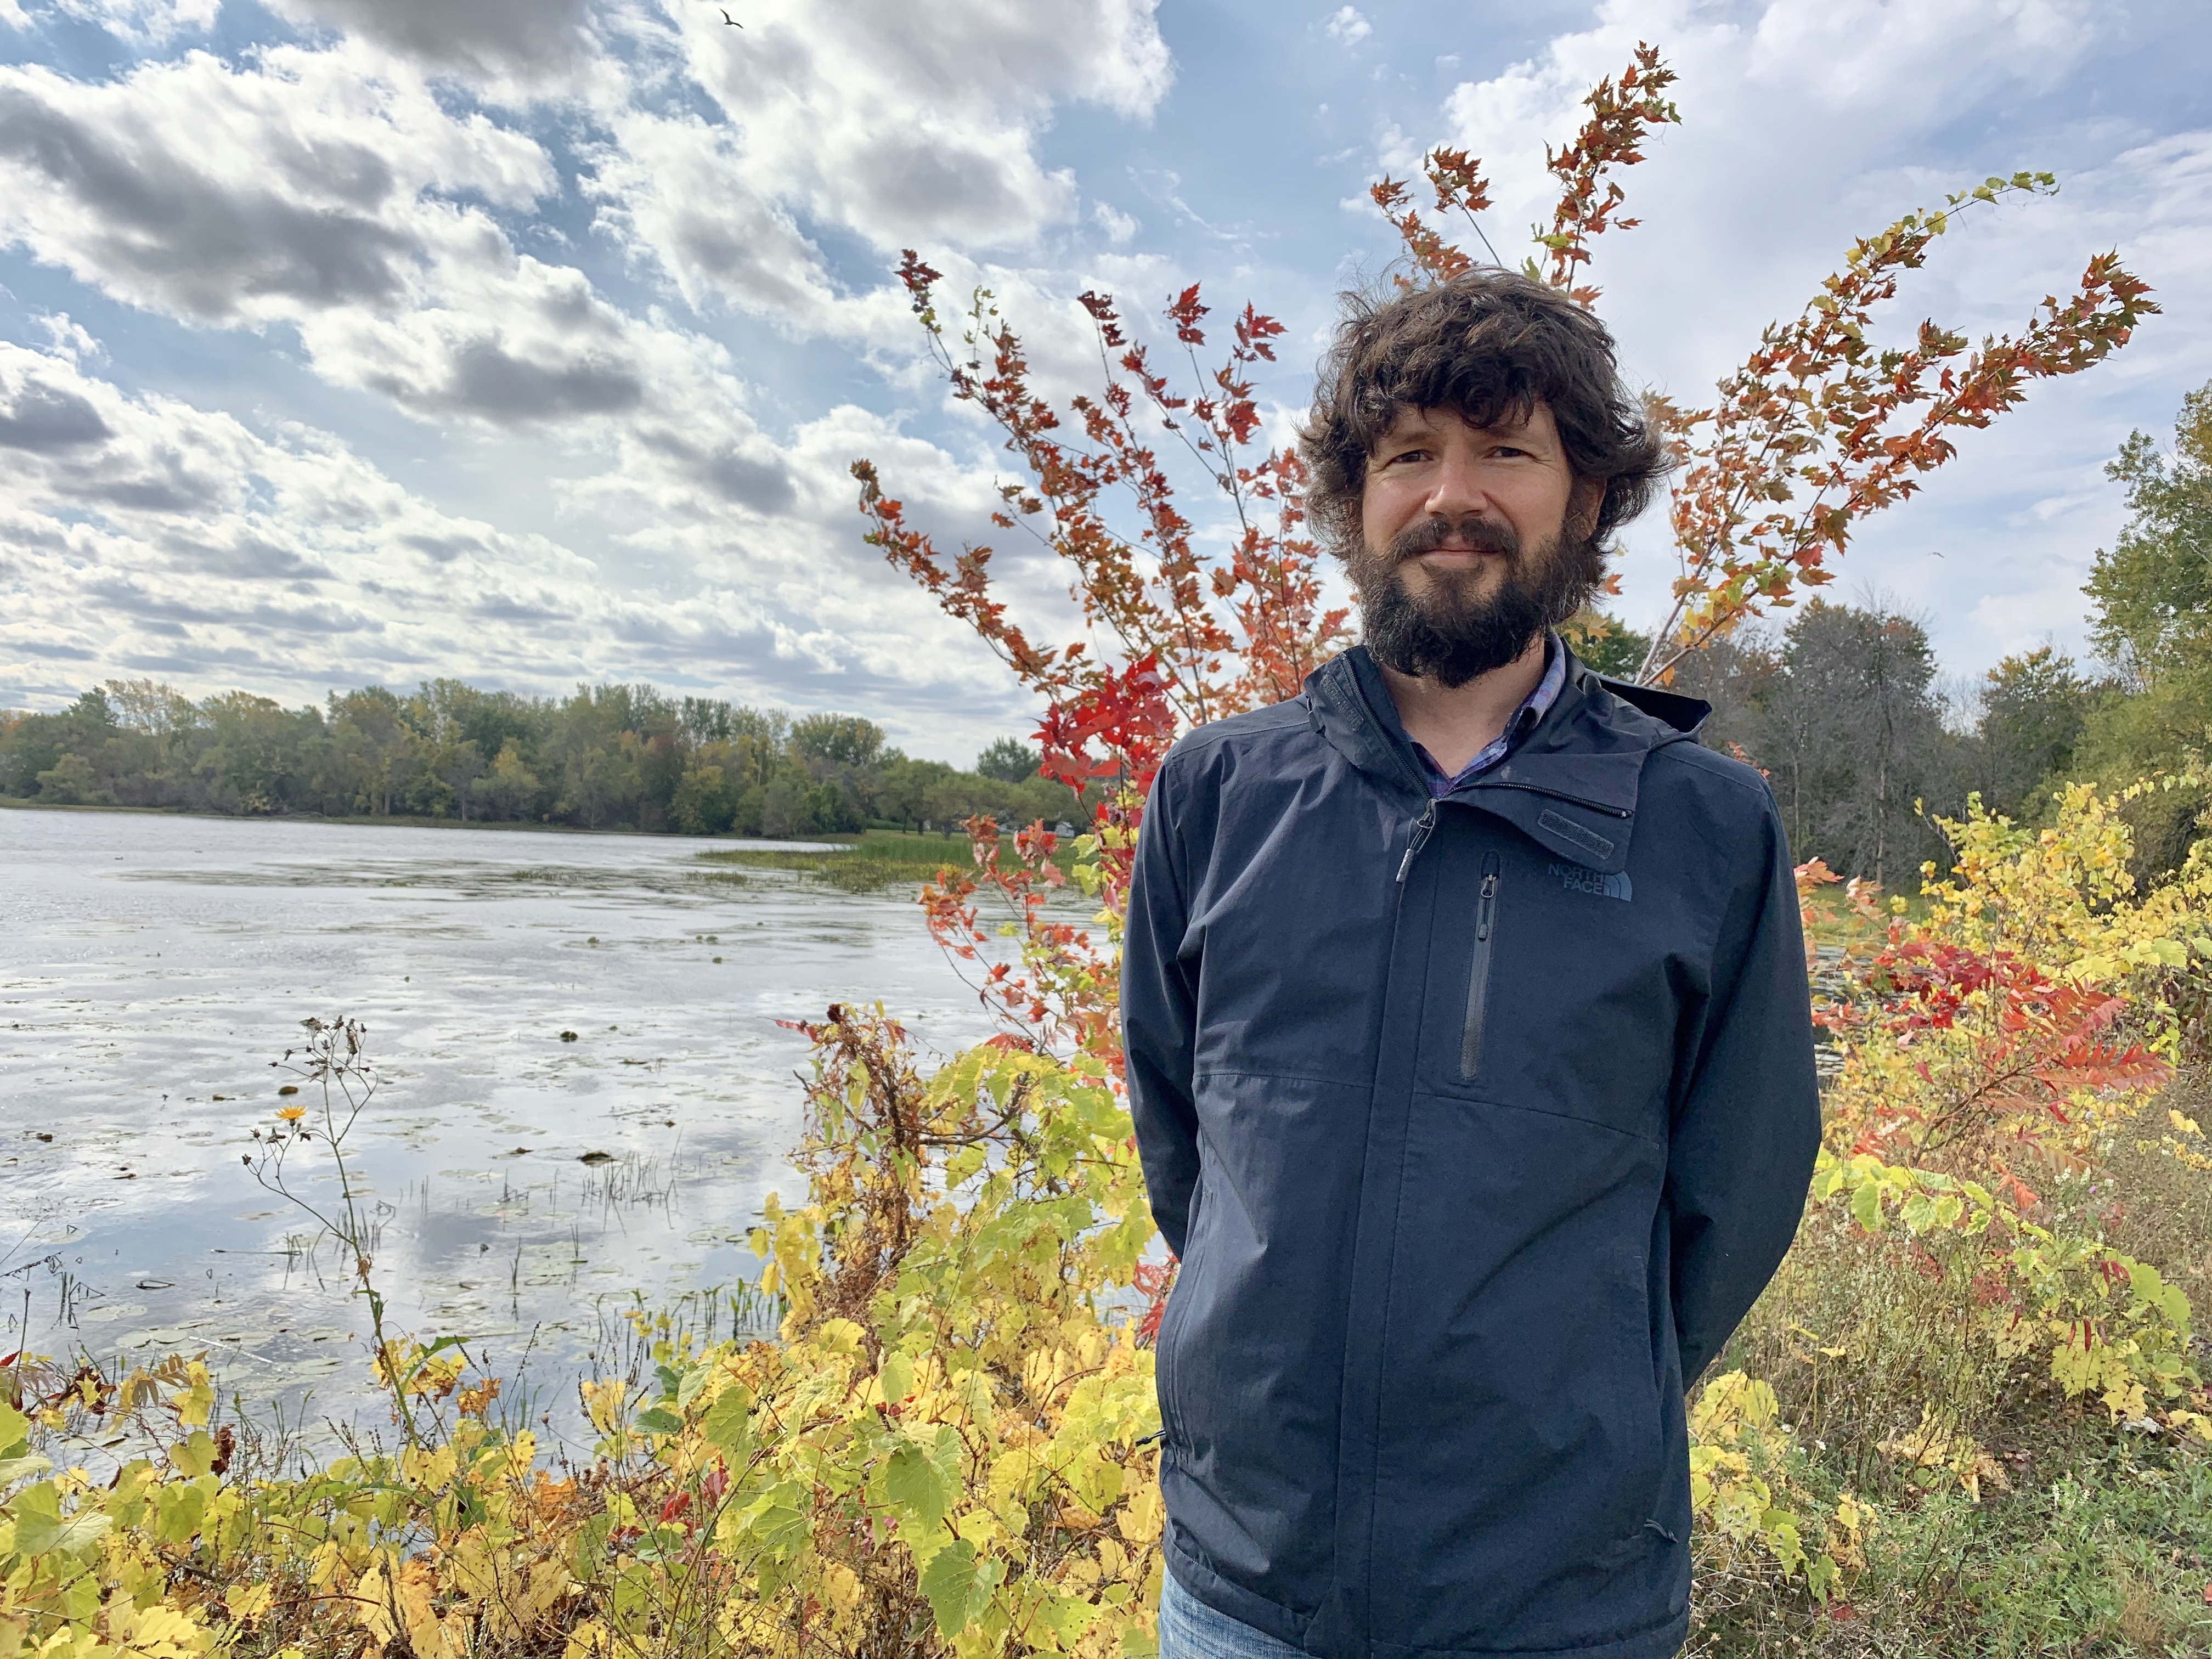 Patrick Ragaz, general manager of field science at the Mohawk Council of Kahnawake's Environment Protection Office. (Ka'nhehsí:io Deer/CBC)